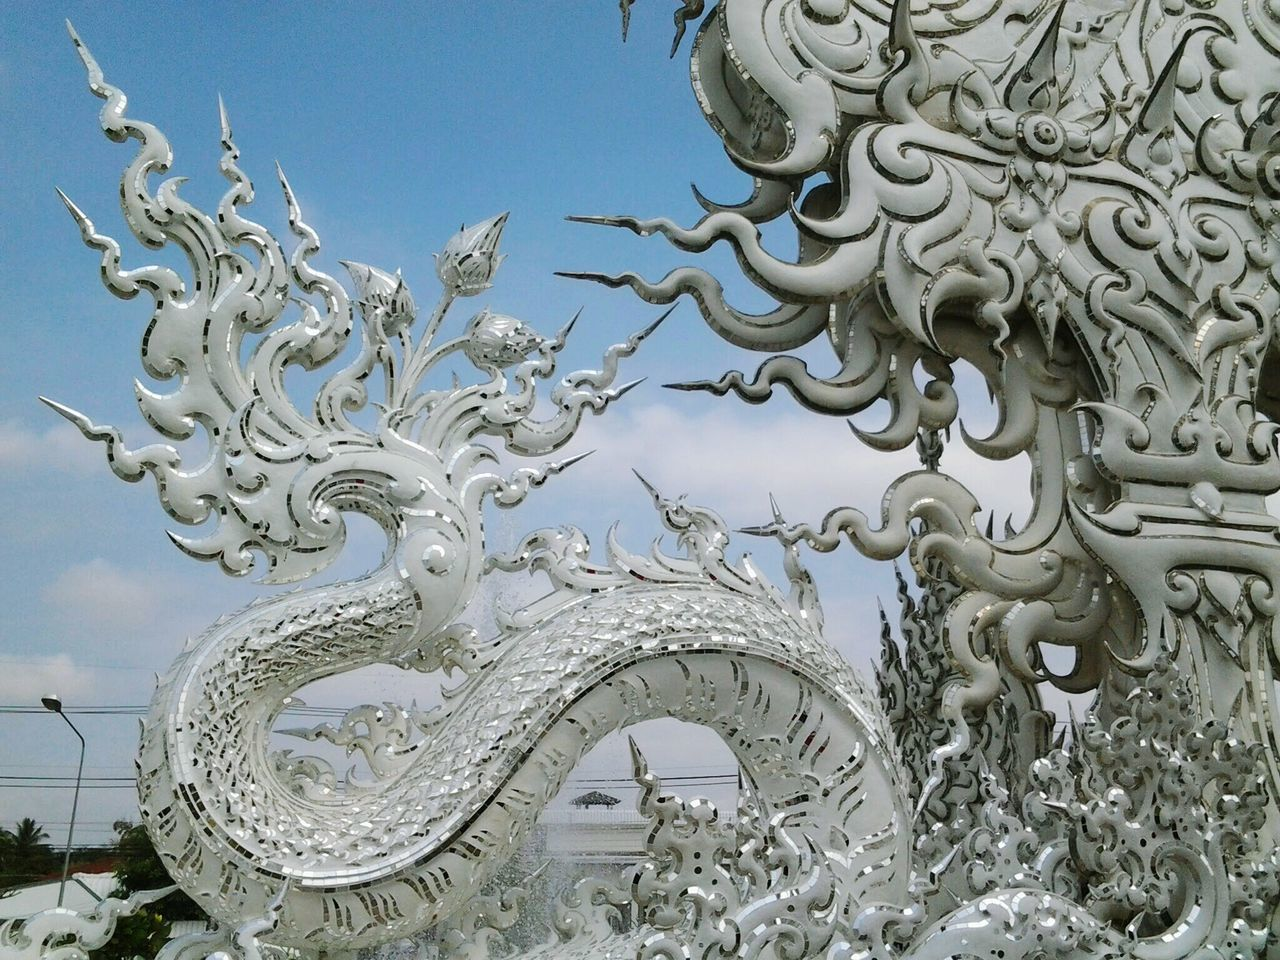 Naga in the imagination of Buddhist. Wat Rong Khun. Chiang Rai. TH. Focus On Foreground Sculpture Full Frame Thailand Temple Landscape Tradition Beauty Religion Spirituality Outdoors Buddhism Culture Buddhist Temple Luxury Illuminated Arts Culture And Entertainment Place Of Worship Travel Destinations Travelling Thailand BUDDHISM IS LOVE Ornate Low Angle View Architecture Scenics No People Statue